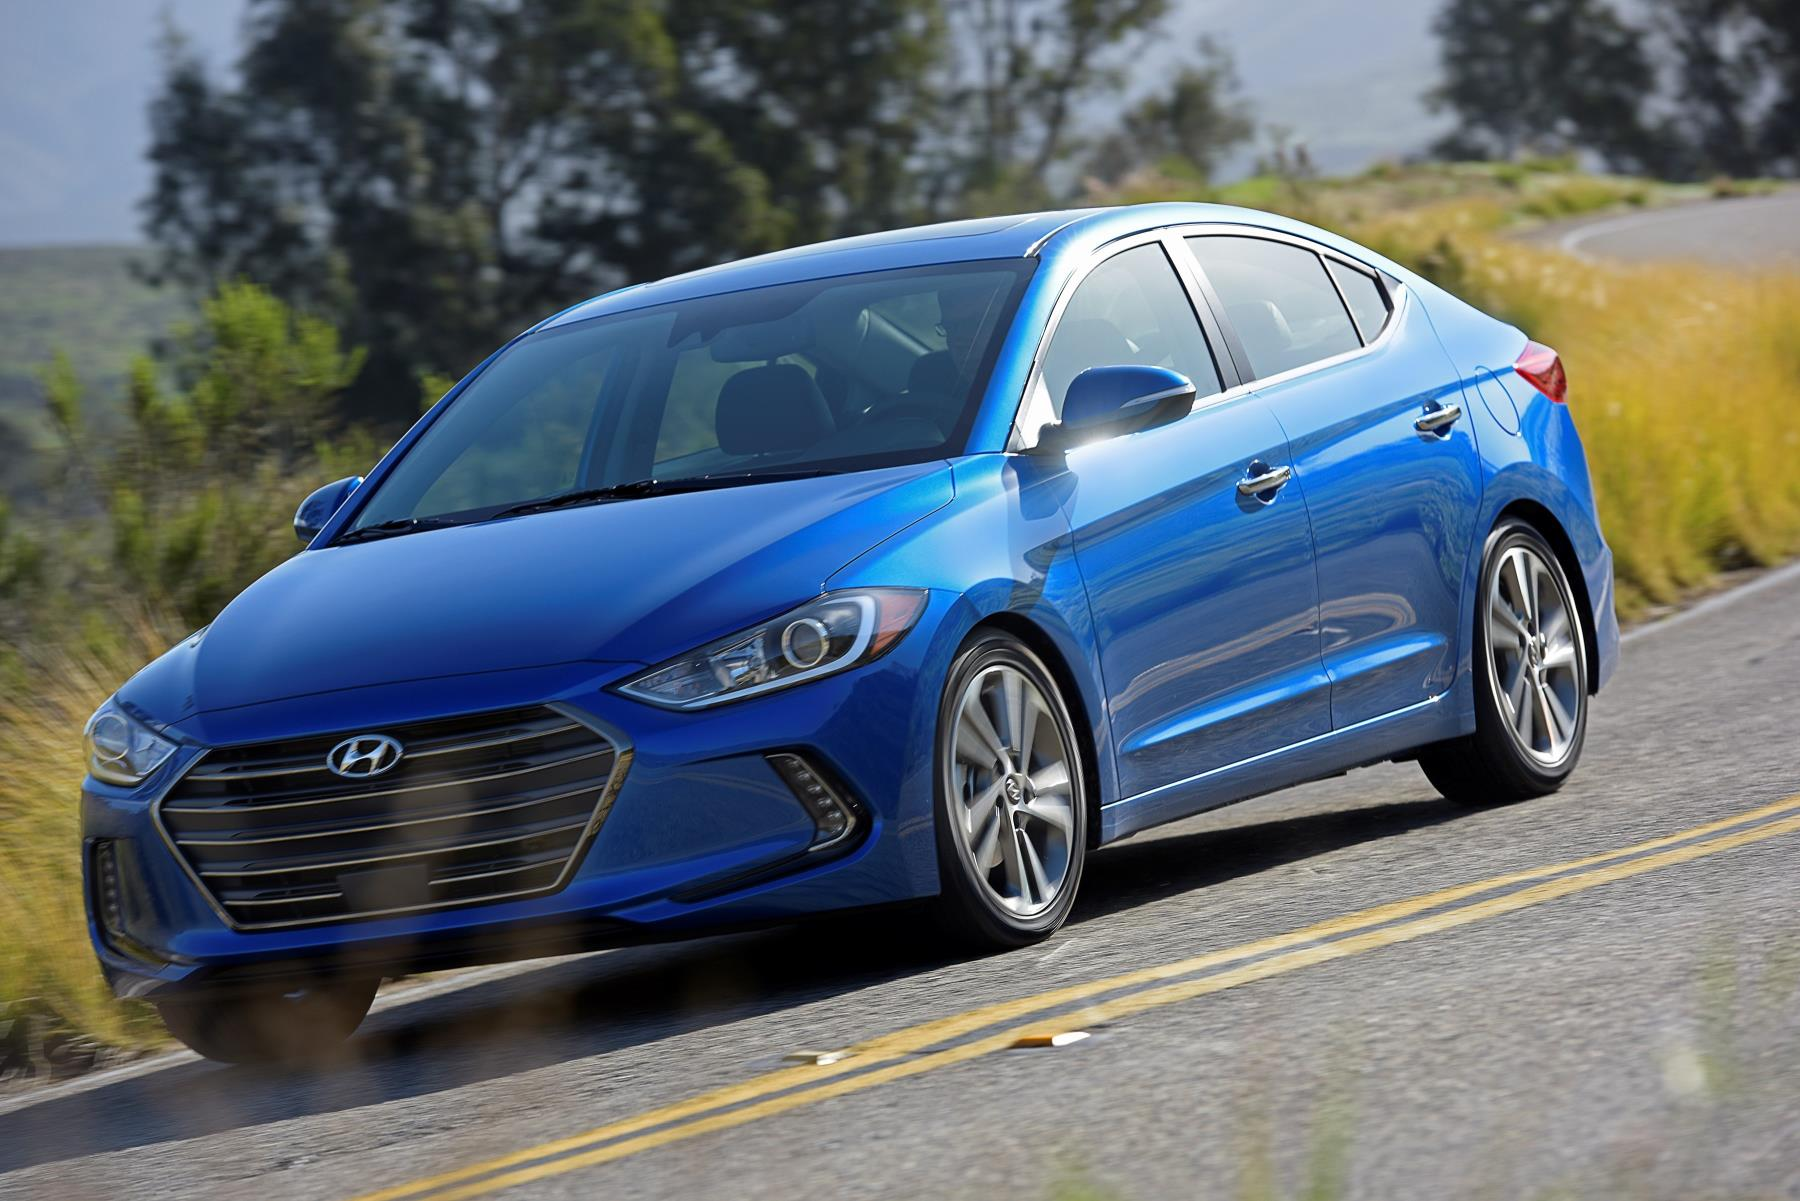 Hyundai Elantra, one of Hyundai's top selling vehicles in calendar year 2017